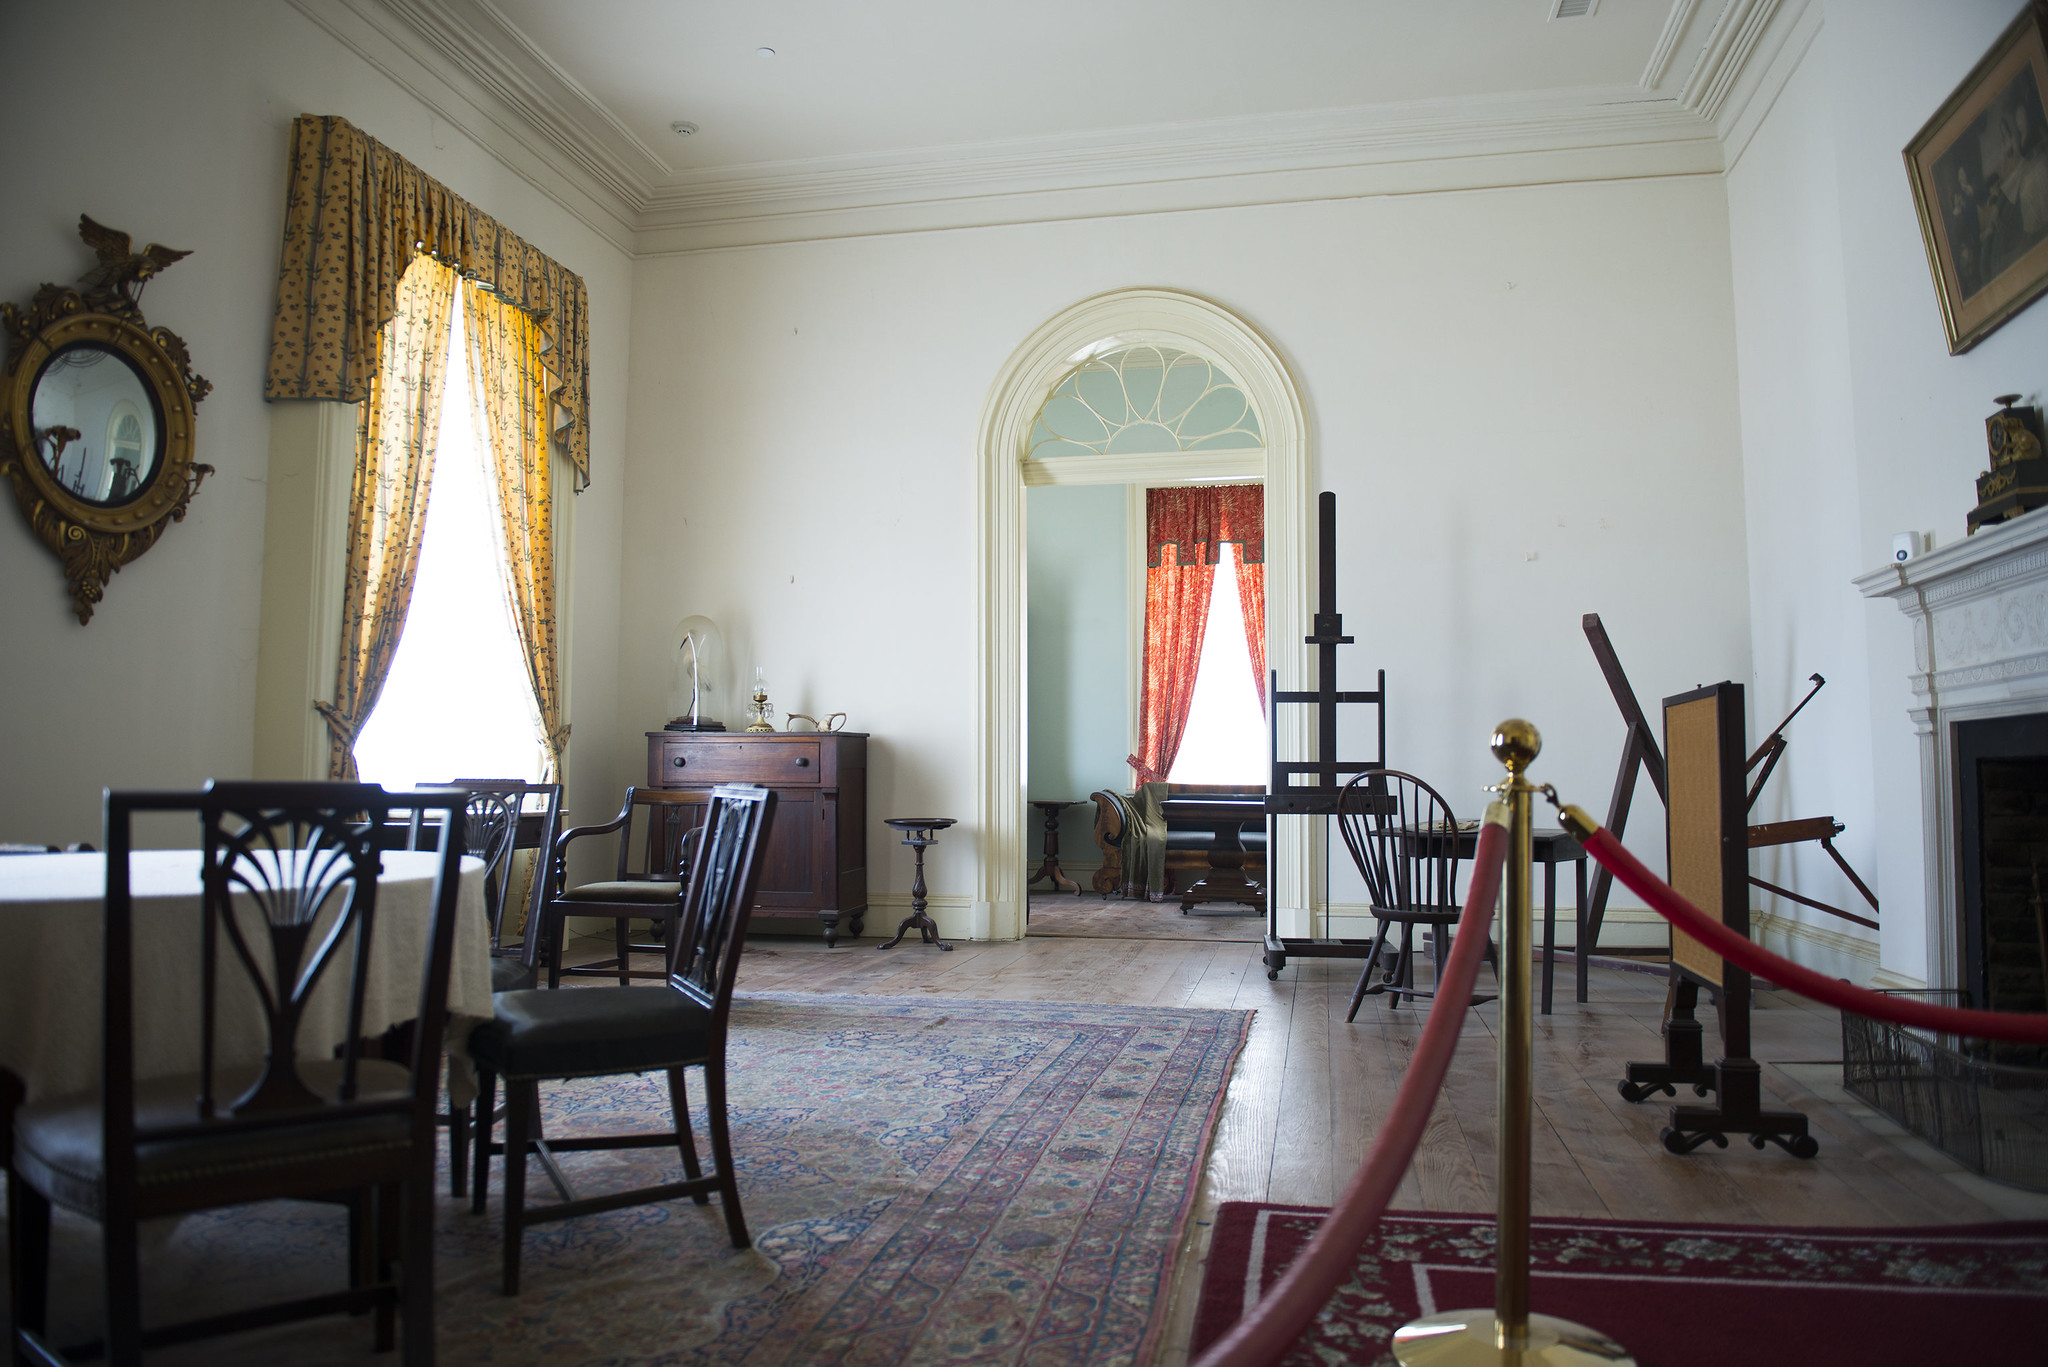 Interior of Arlington House, featuring historic furnishings